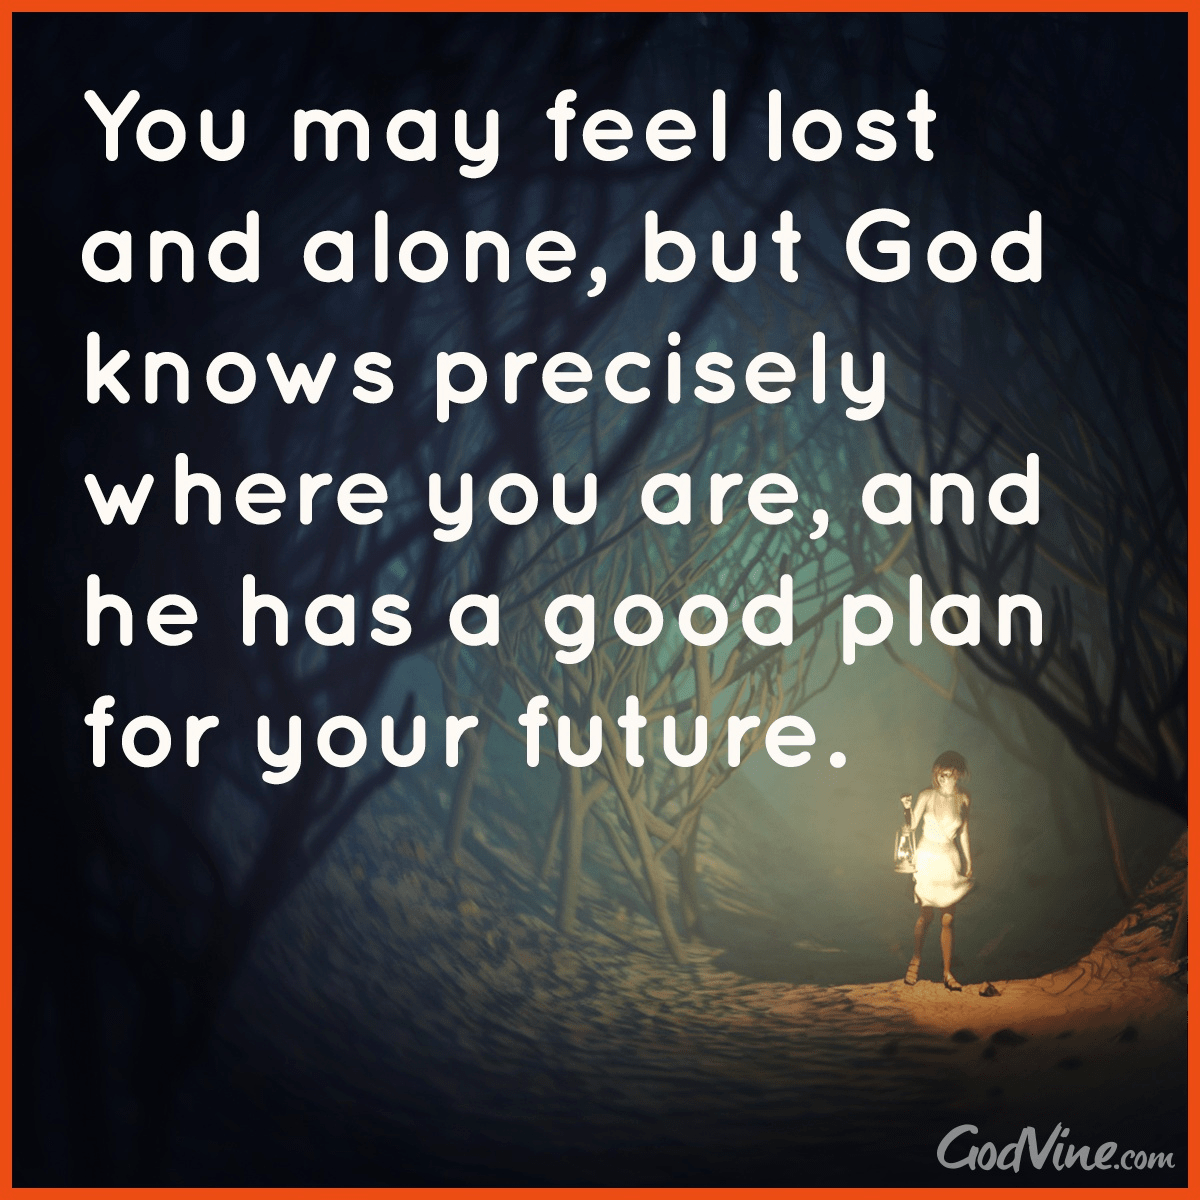 God Has a Good Plan for Your Future